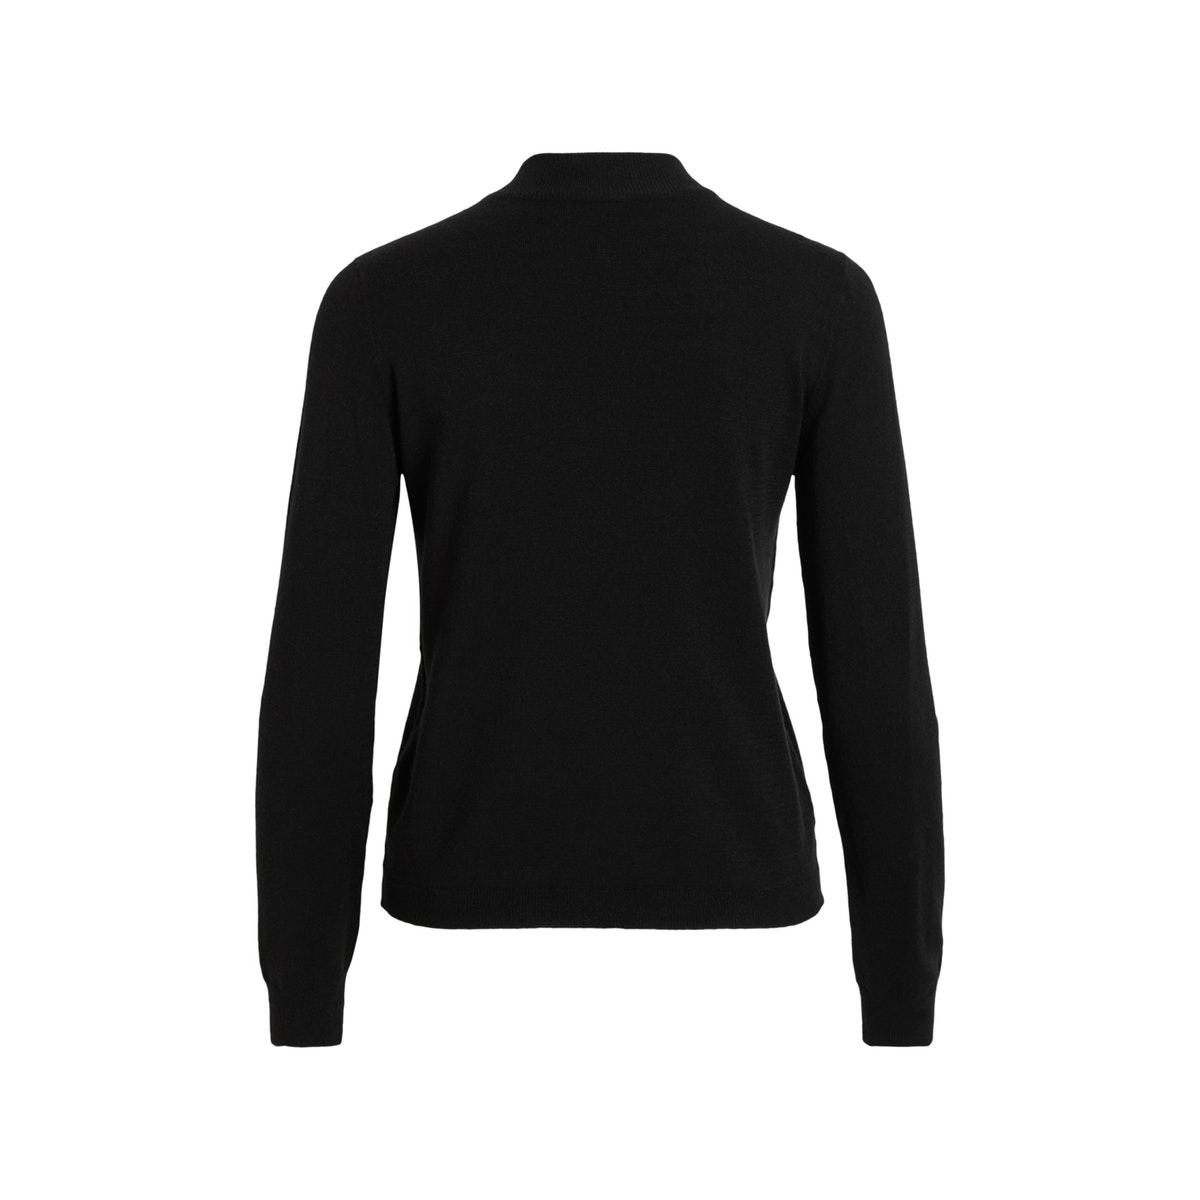 objthess l/s knit pullover noos 23030144 object trui black